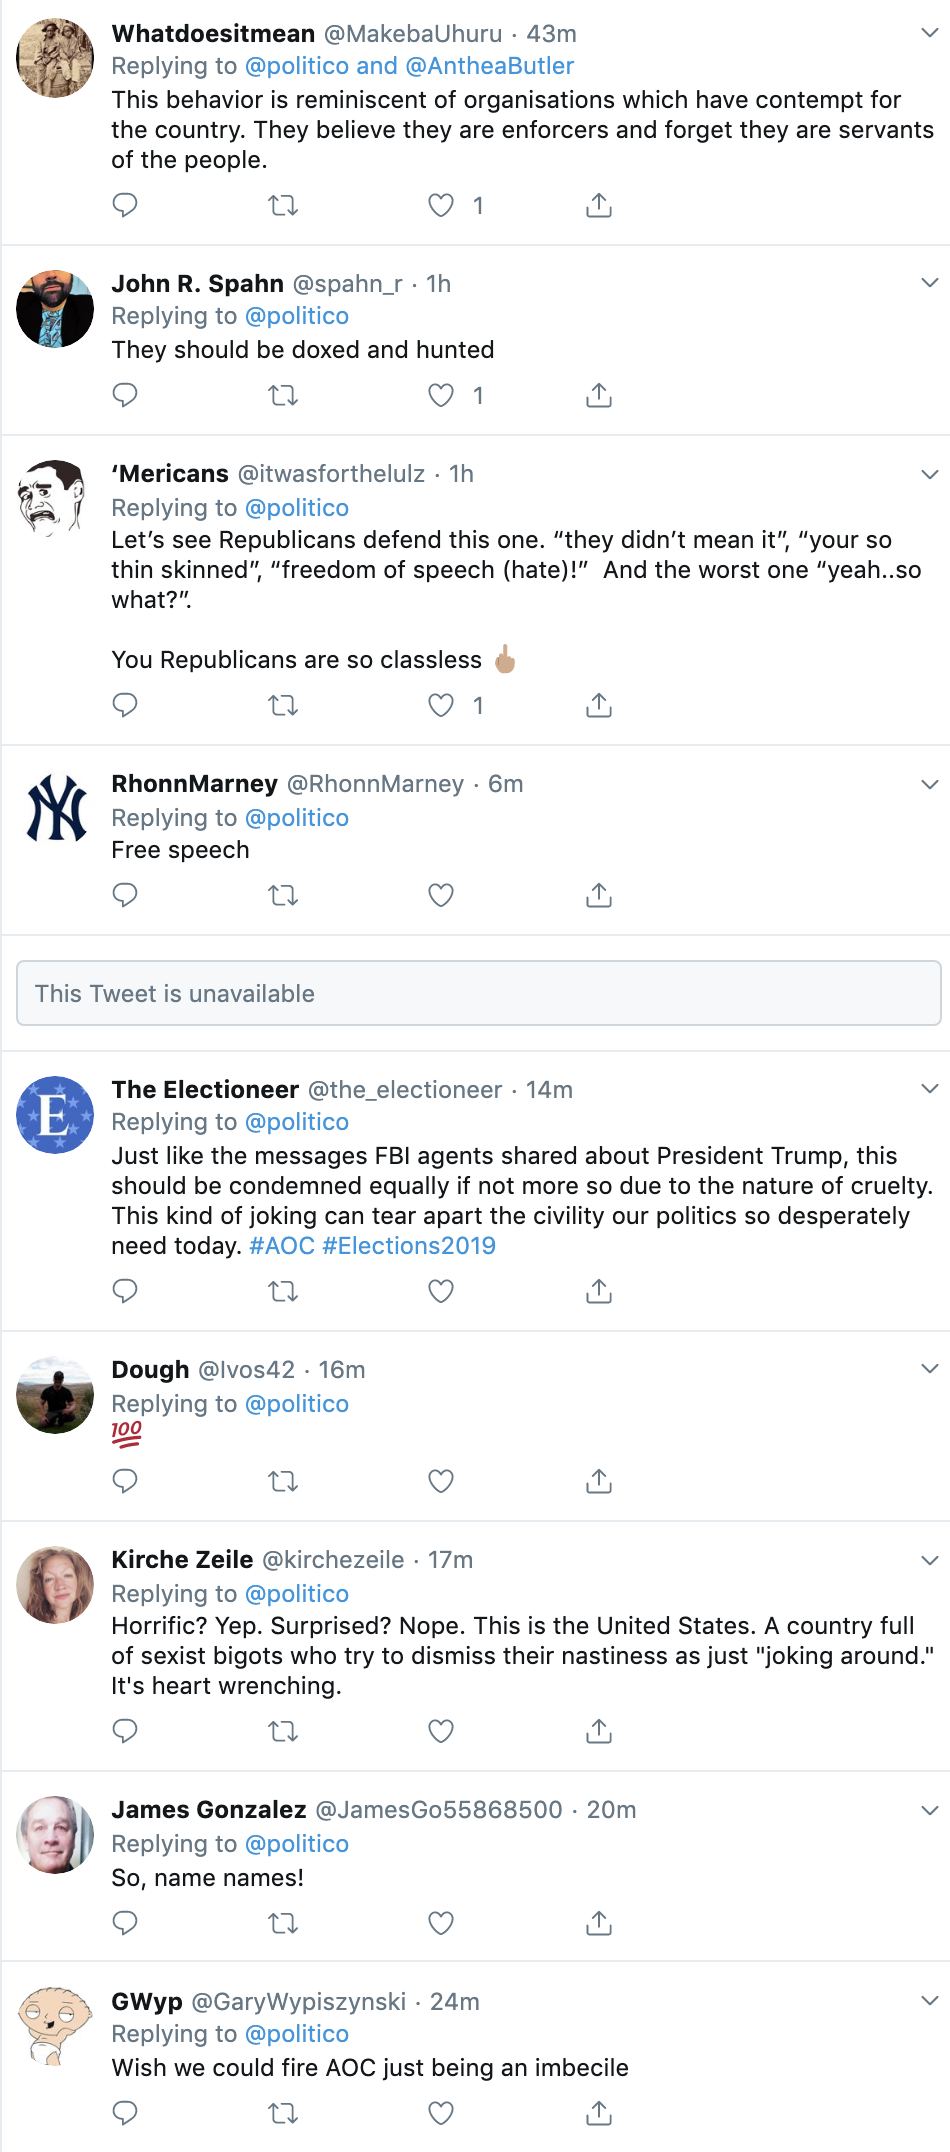 Screen-Shot-2019-07-01-at-2.45.46-PM Out-Of-Control Border Agents Mock Dead Immigrants On Facebook Corruption Crime Domestic Policy Donald Trump Human Rights Humanitarian Immigration Investigation Politics Racism Refugees Top Stories